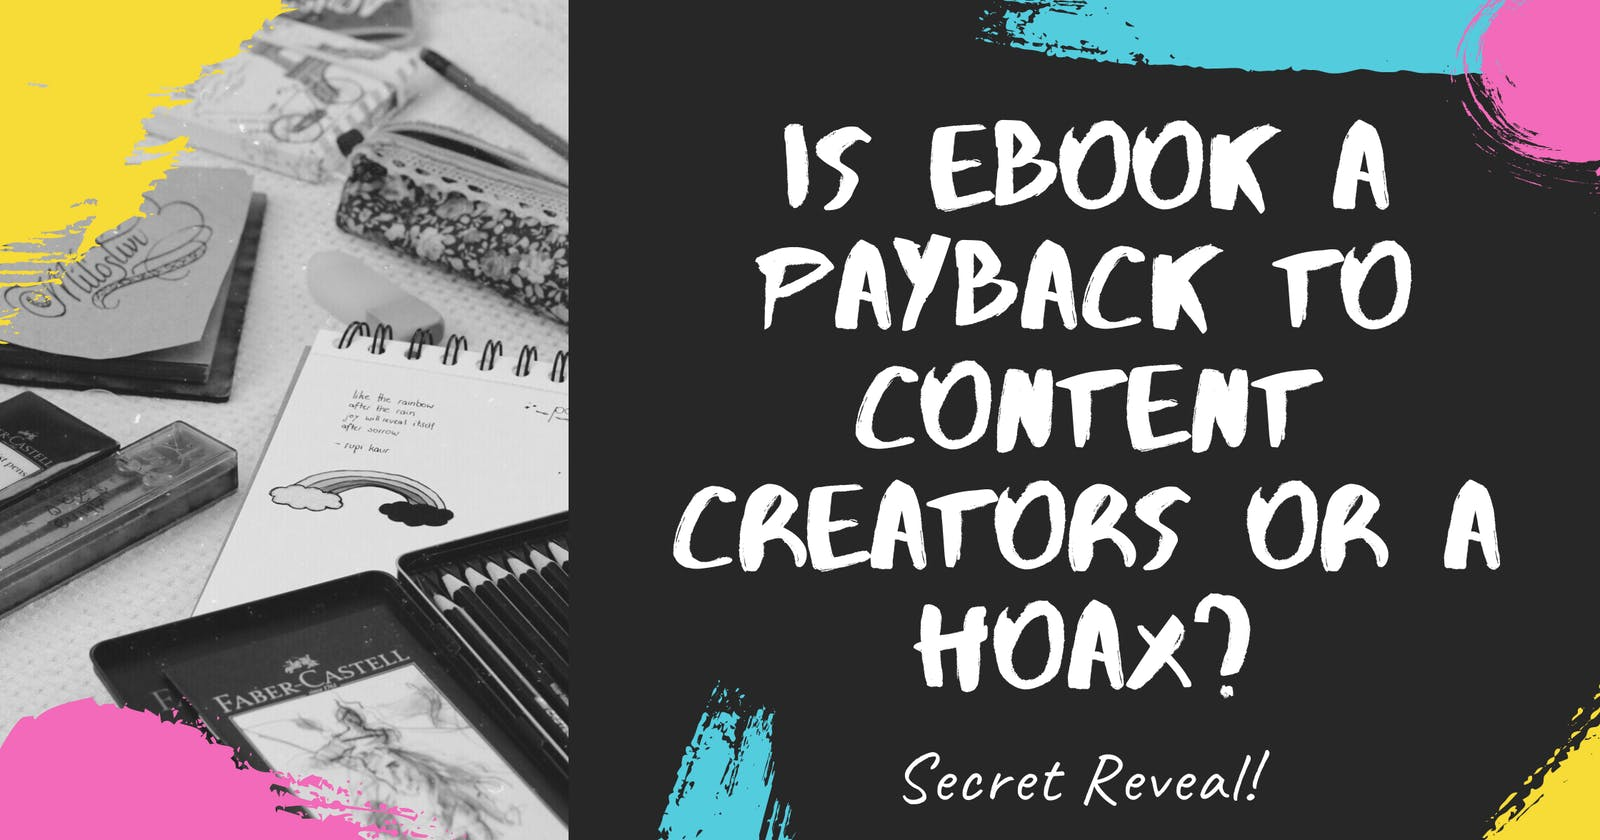 Is eBook a payback to content creators or a hoax?